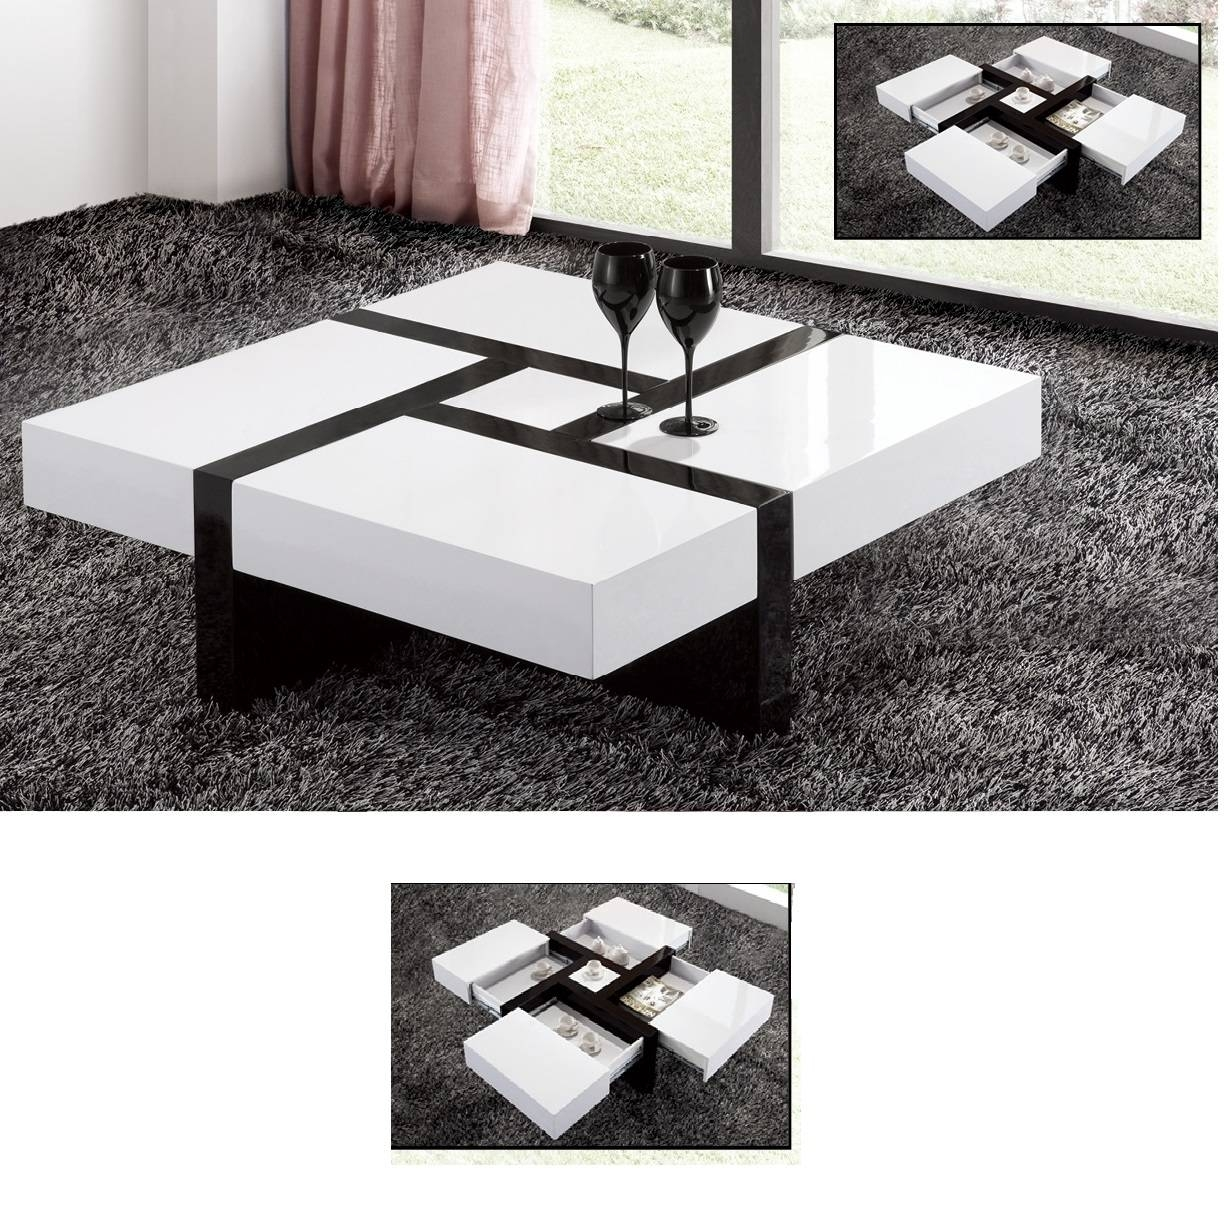 Verona Extendable High Gloss Coffee Table In White: 30 Best Ideas Of Coffee Tables White High Gloss